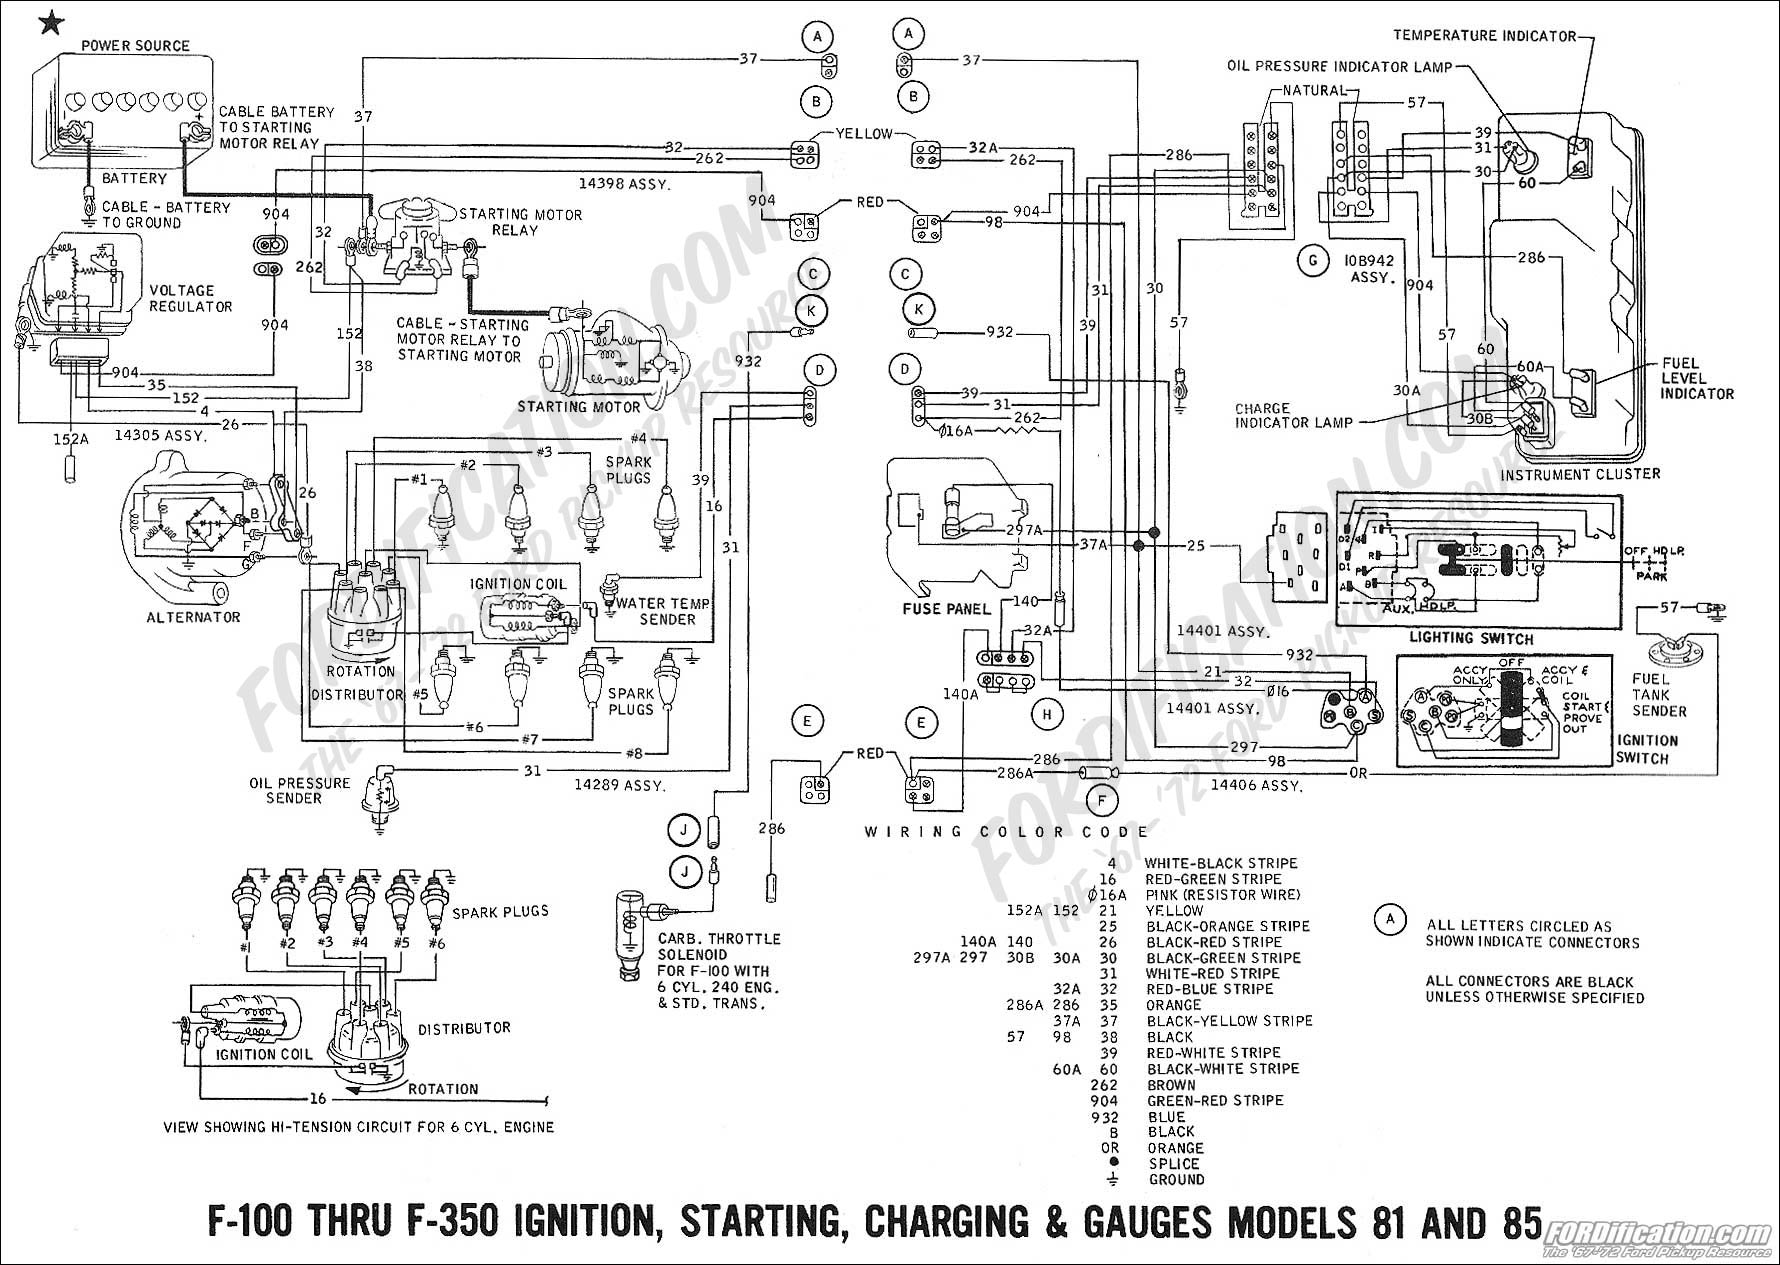 1970 Ford Bronco Wiring Harness Library 1973 Chevelle Diagram F100 240 Another Blog About U2022 Rh Ok2 Infoservice Ru